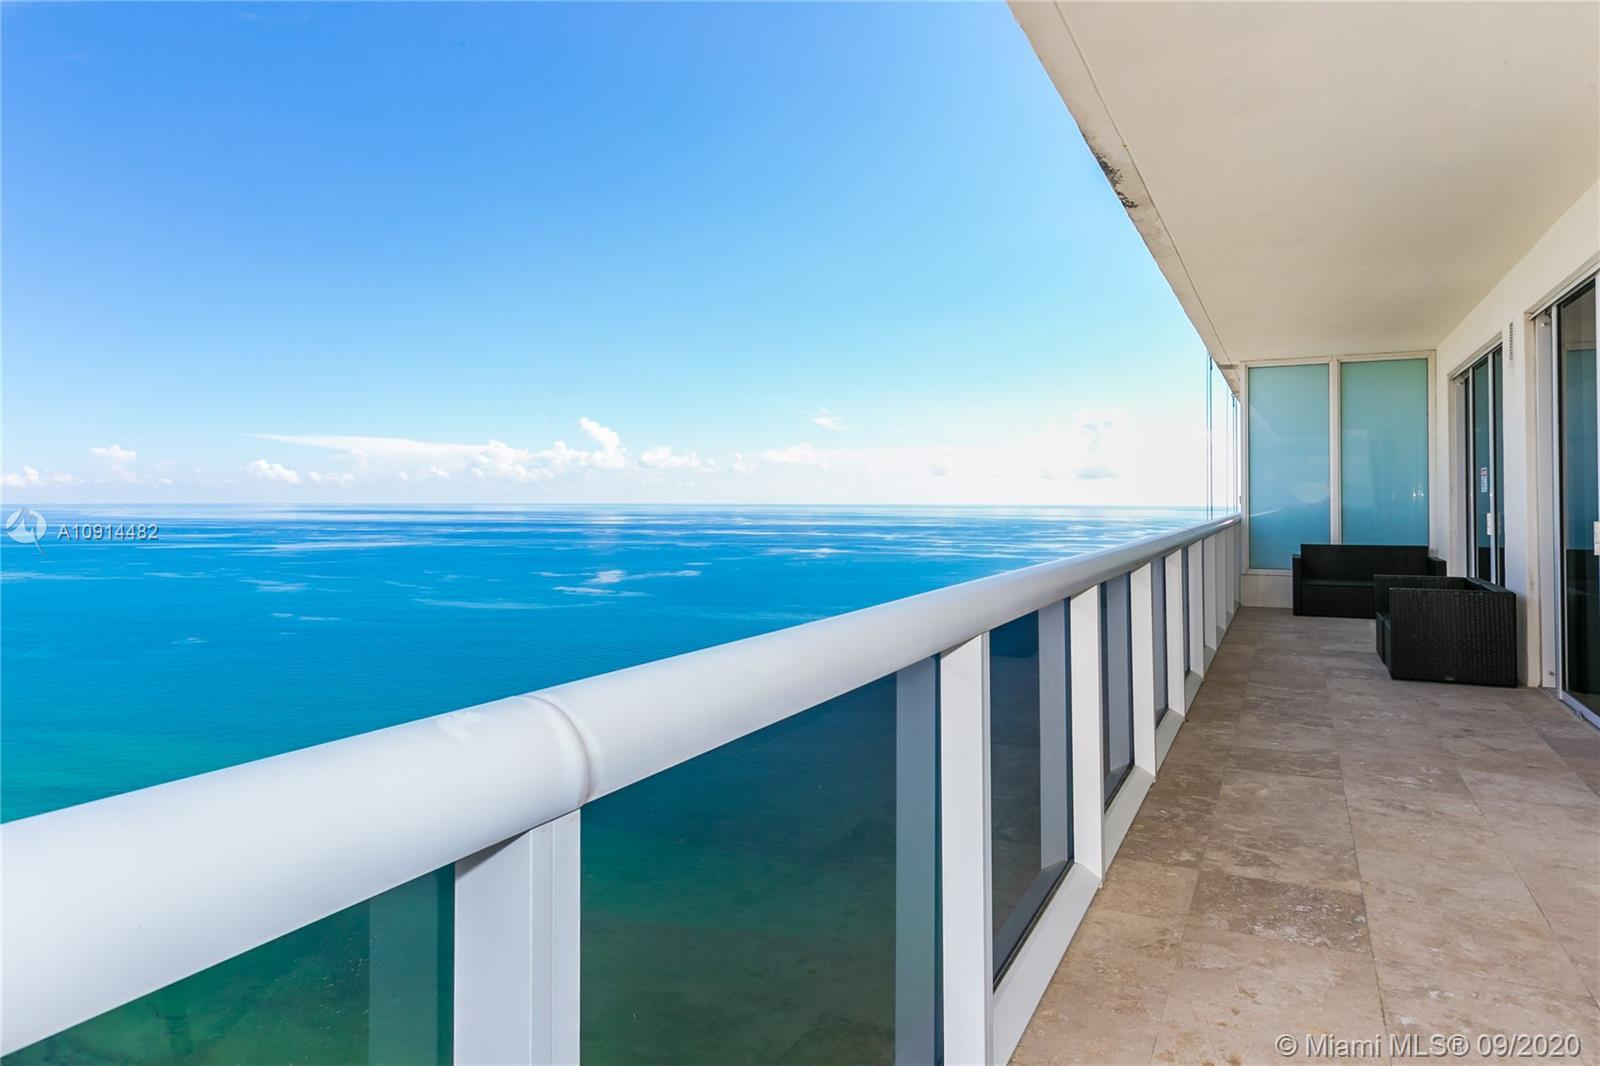 Immaculate Penthouse with wraparound balcony. Amazing ocean views together with the panorama of our